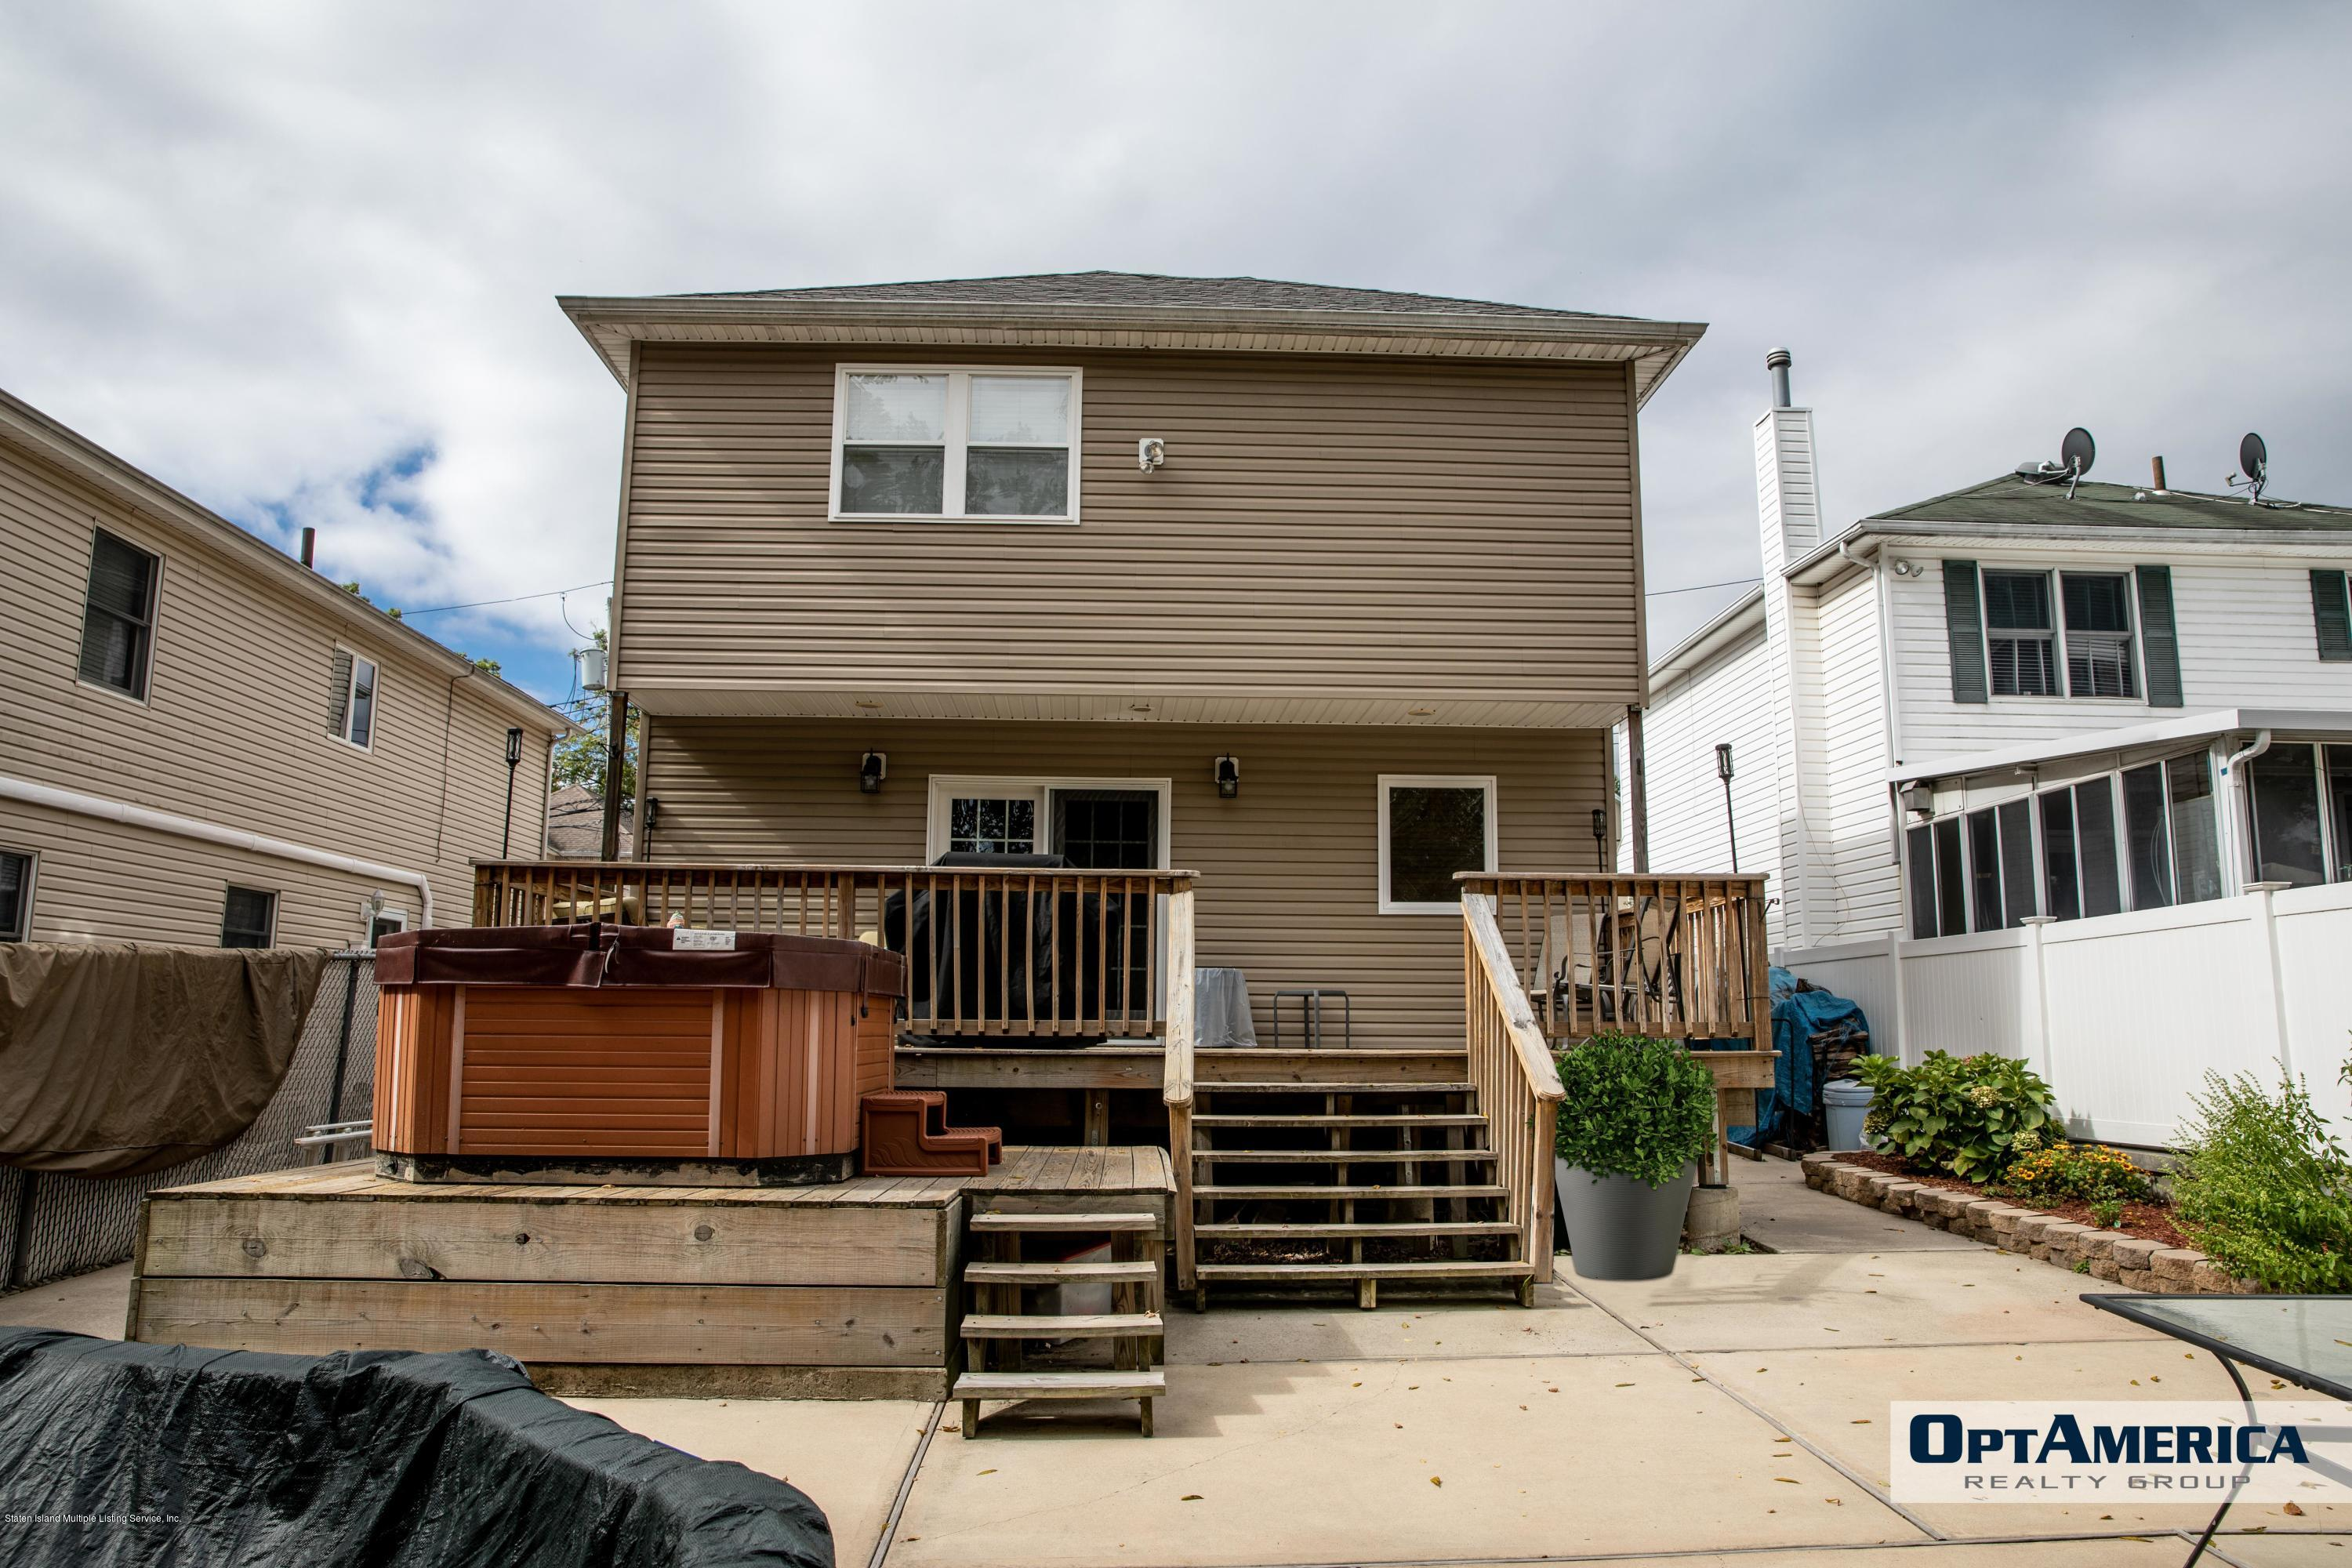 Single Family - Detached 35 Colon Street  Staten Island, NY 10312, MLS-1127011-20